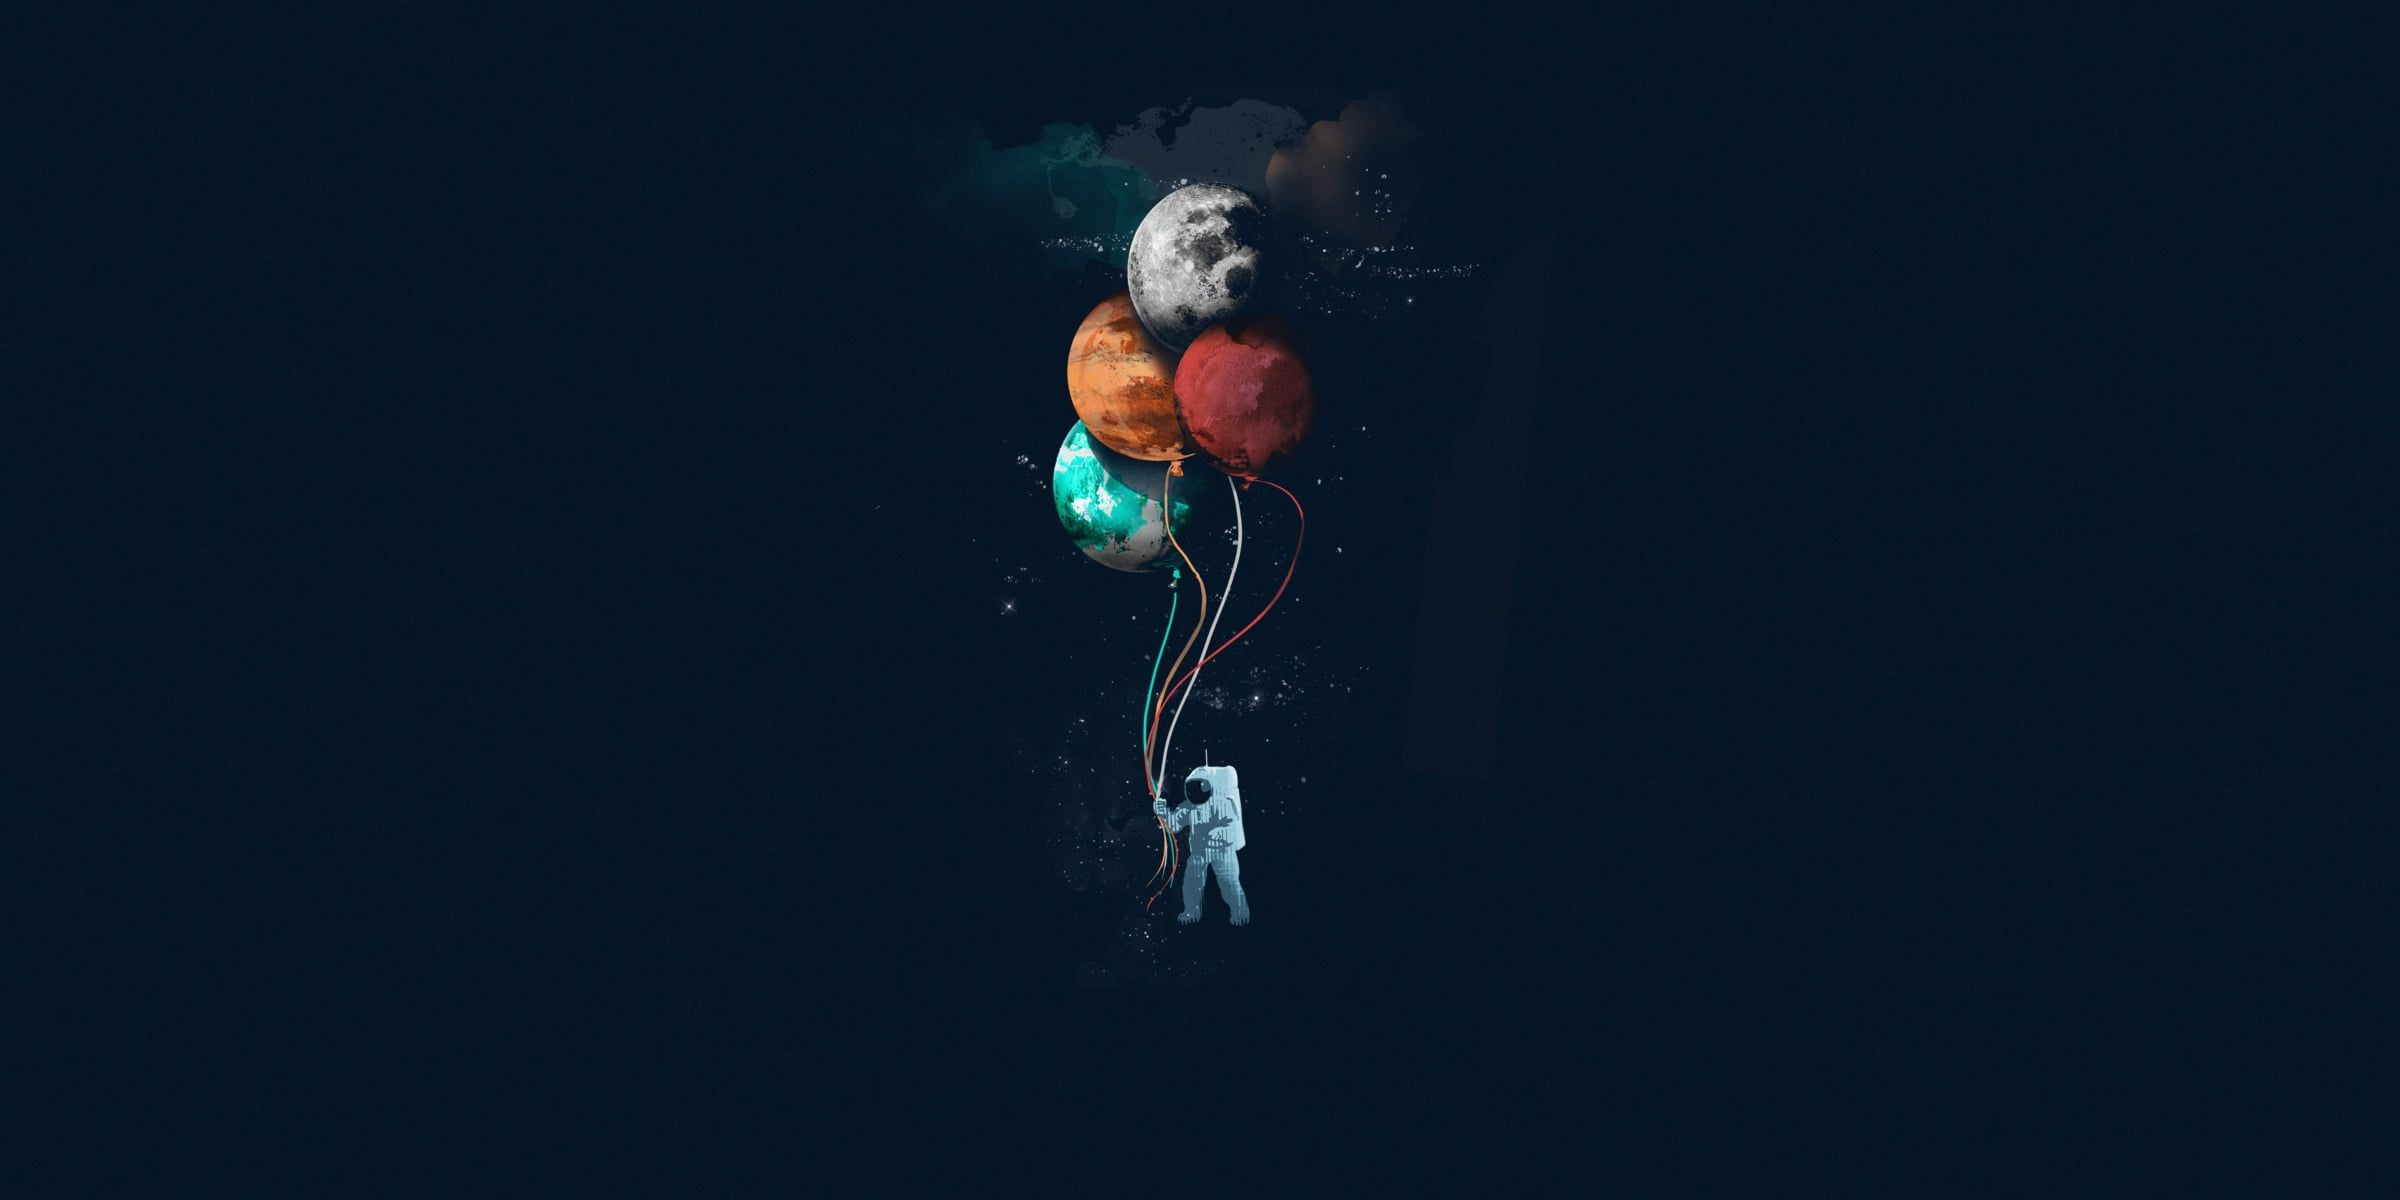 Minimalism Artwork Space Space Art Astronaut Simple Background 1080p Wallpaper Hdwallpaper Desktop In 2020 Space Art Minimalist Wallpaper Simple Backgrounds